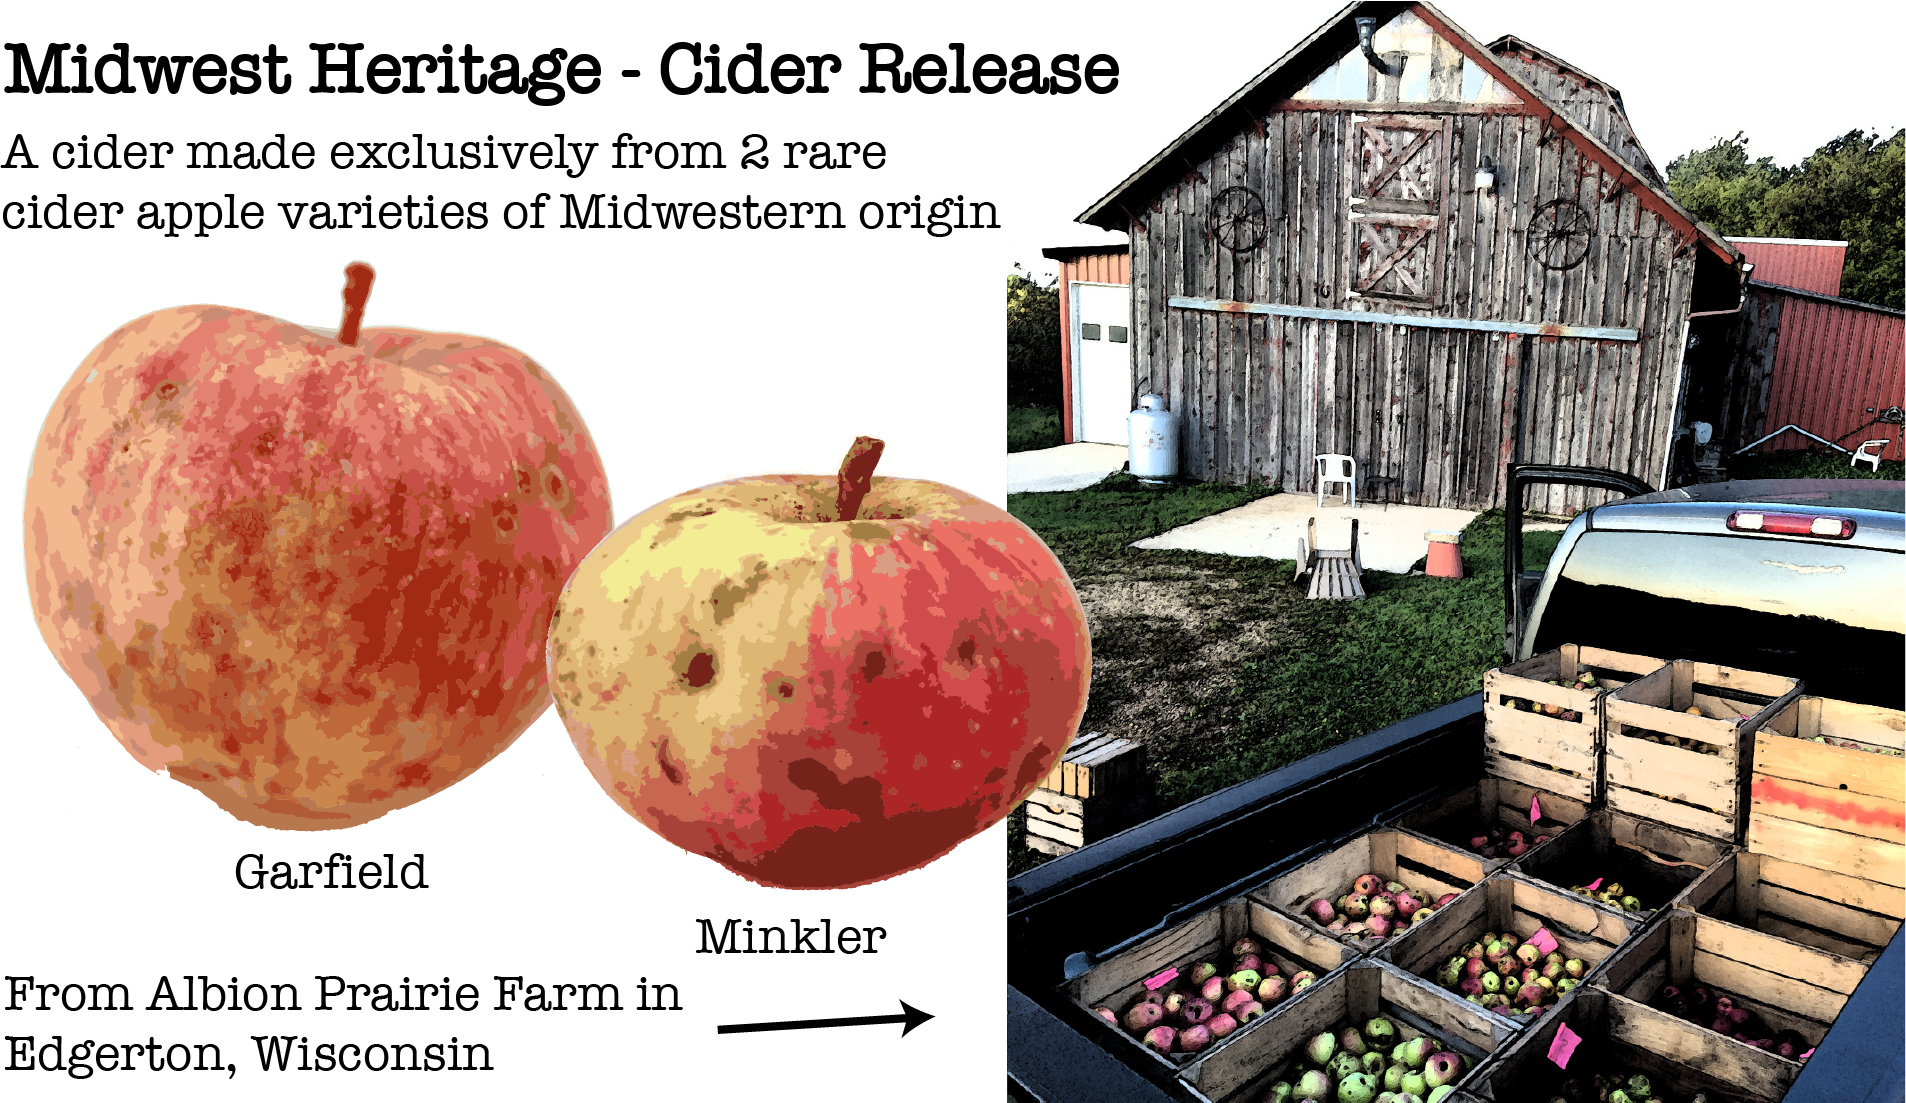 Above: Our Midwest Heritage cider release will be on Friday, August 9th with live music from Van Orman and Helwin